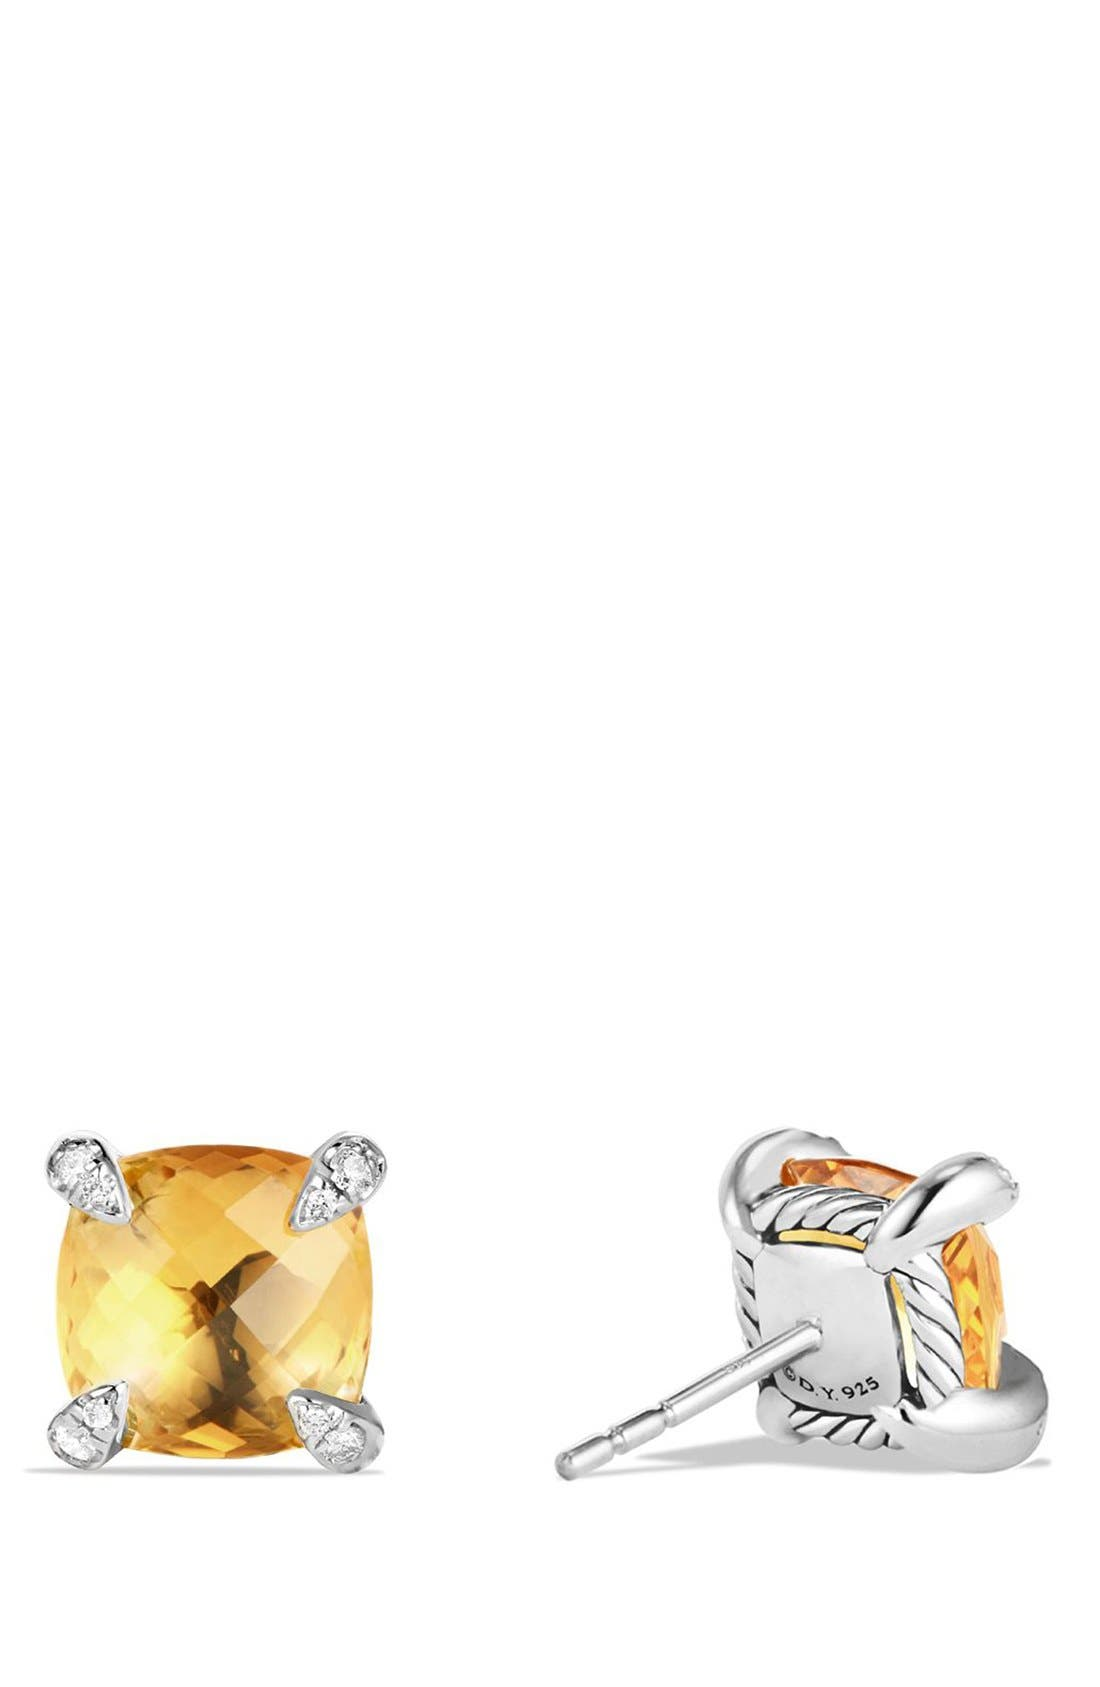 'Châtelaine' Earrings with Semiprecious Stones and Diamonds,                             Alternate thumbnail 3, color,                             SILVER/ CITRINE